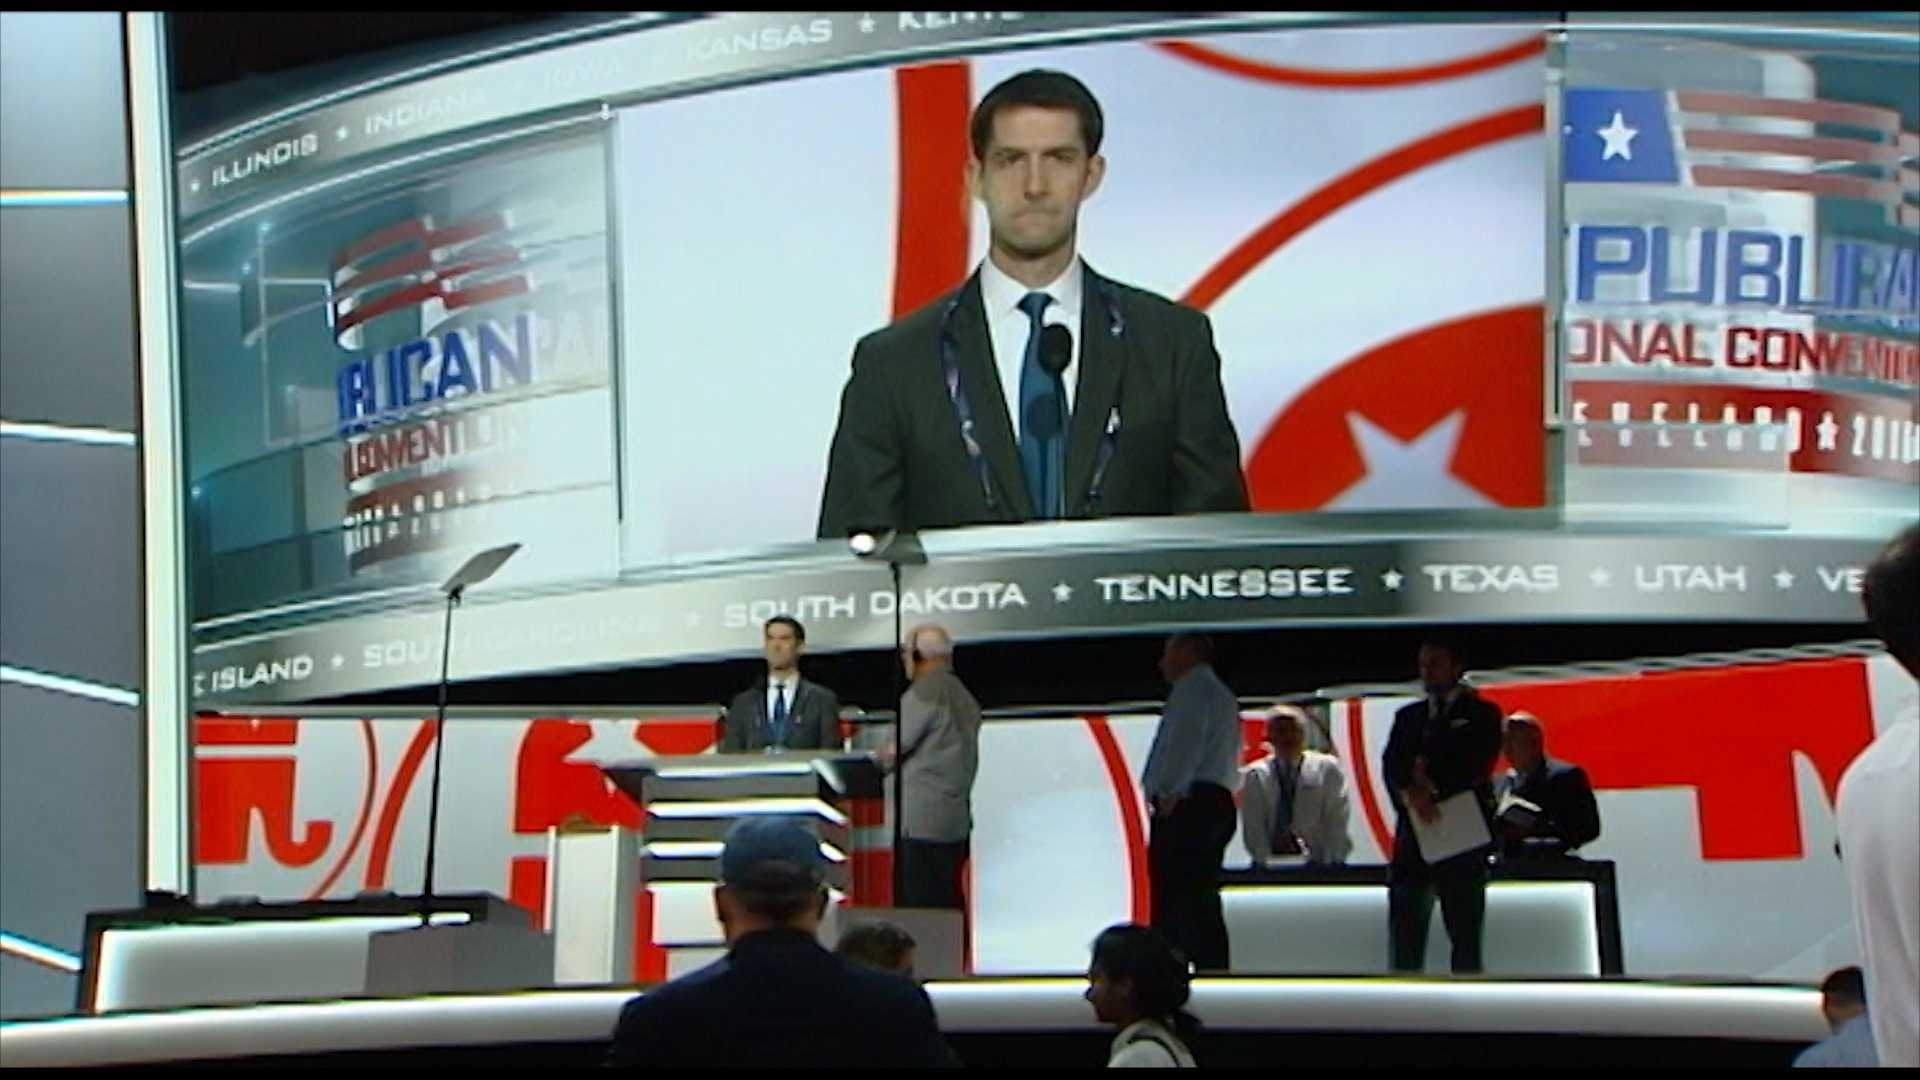 Sen. Tom Cotton at Republican National Convention rehearsal on Sunday